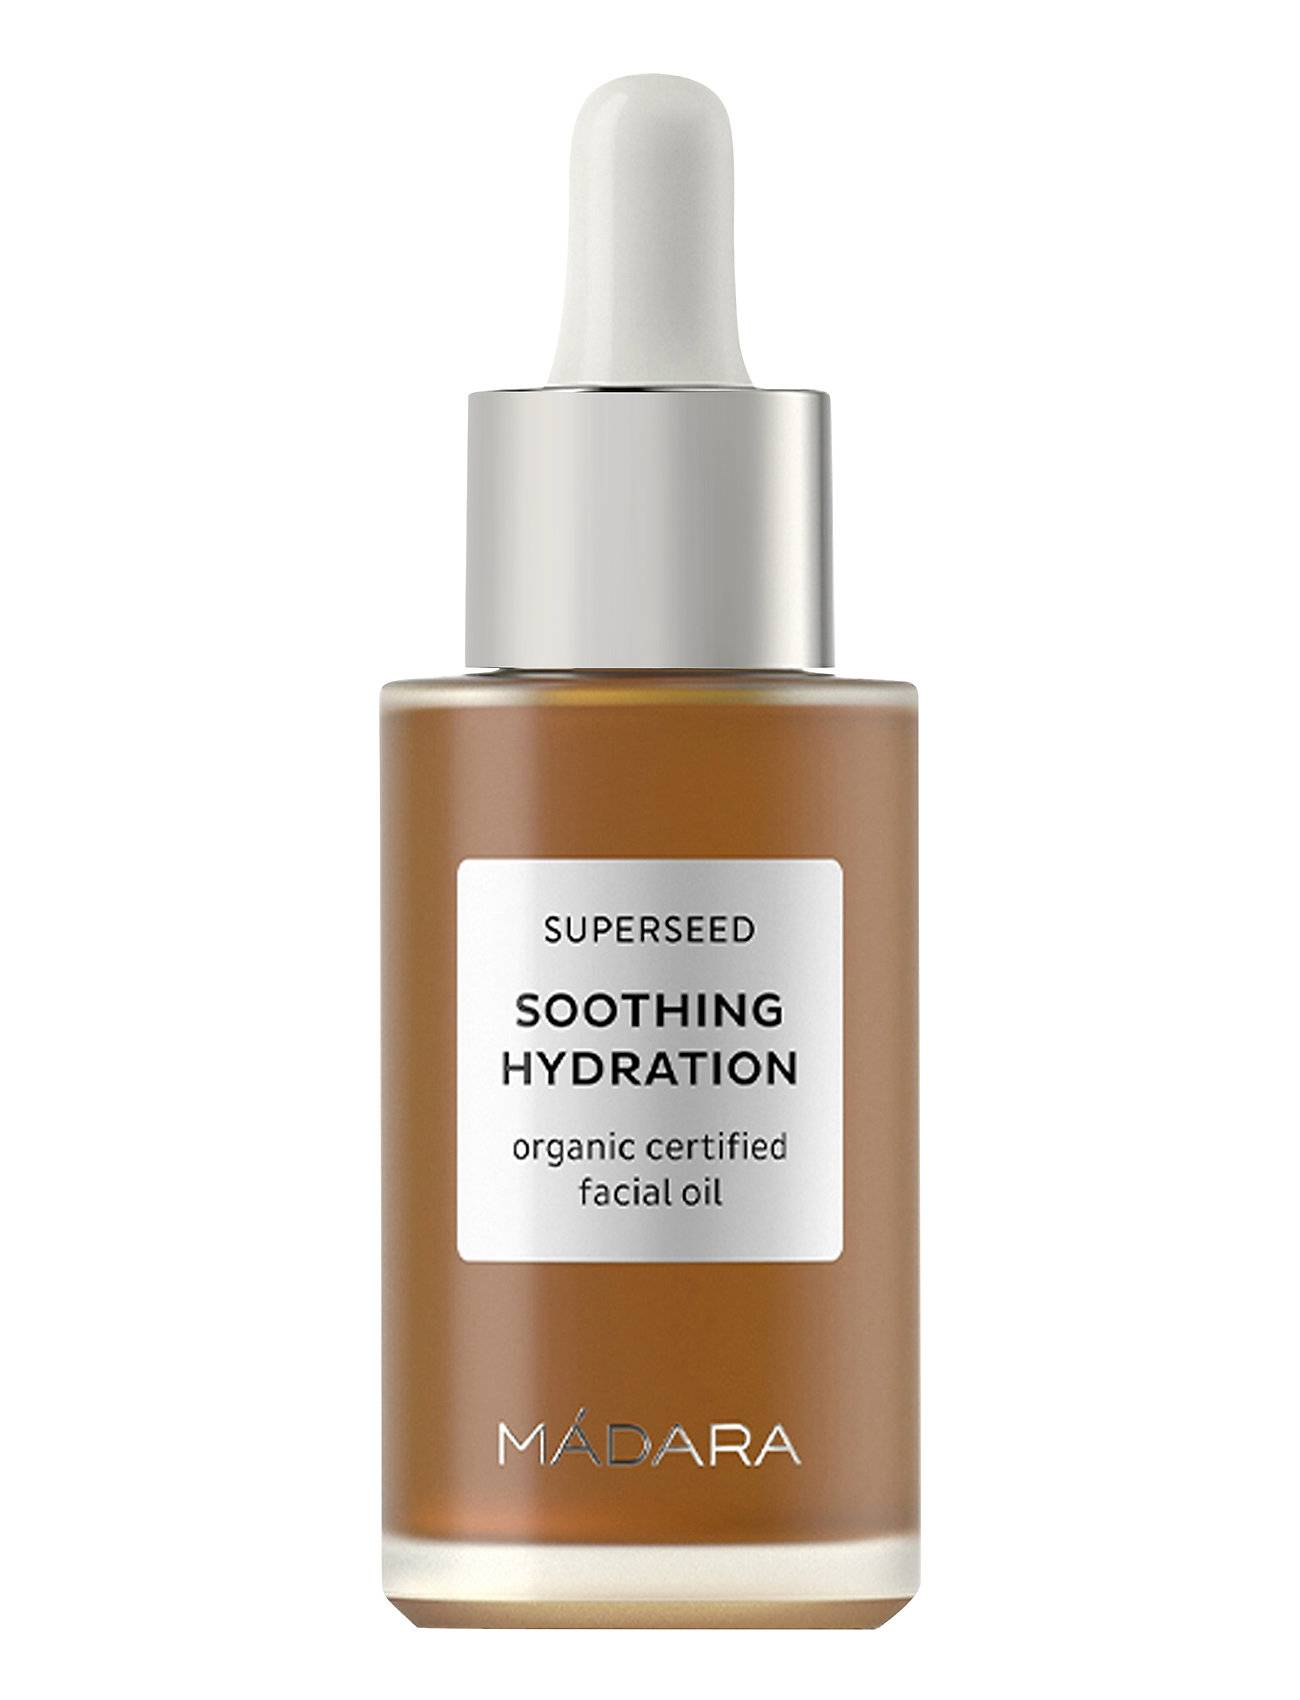 MÁDARA Superseed Soothing Hydration Beauty Oil, 30 Ml